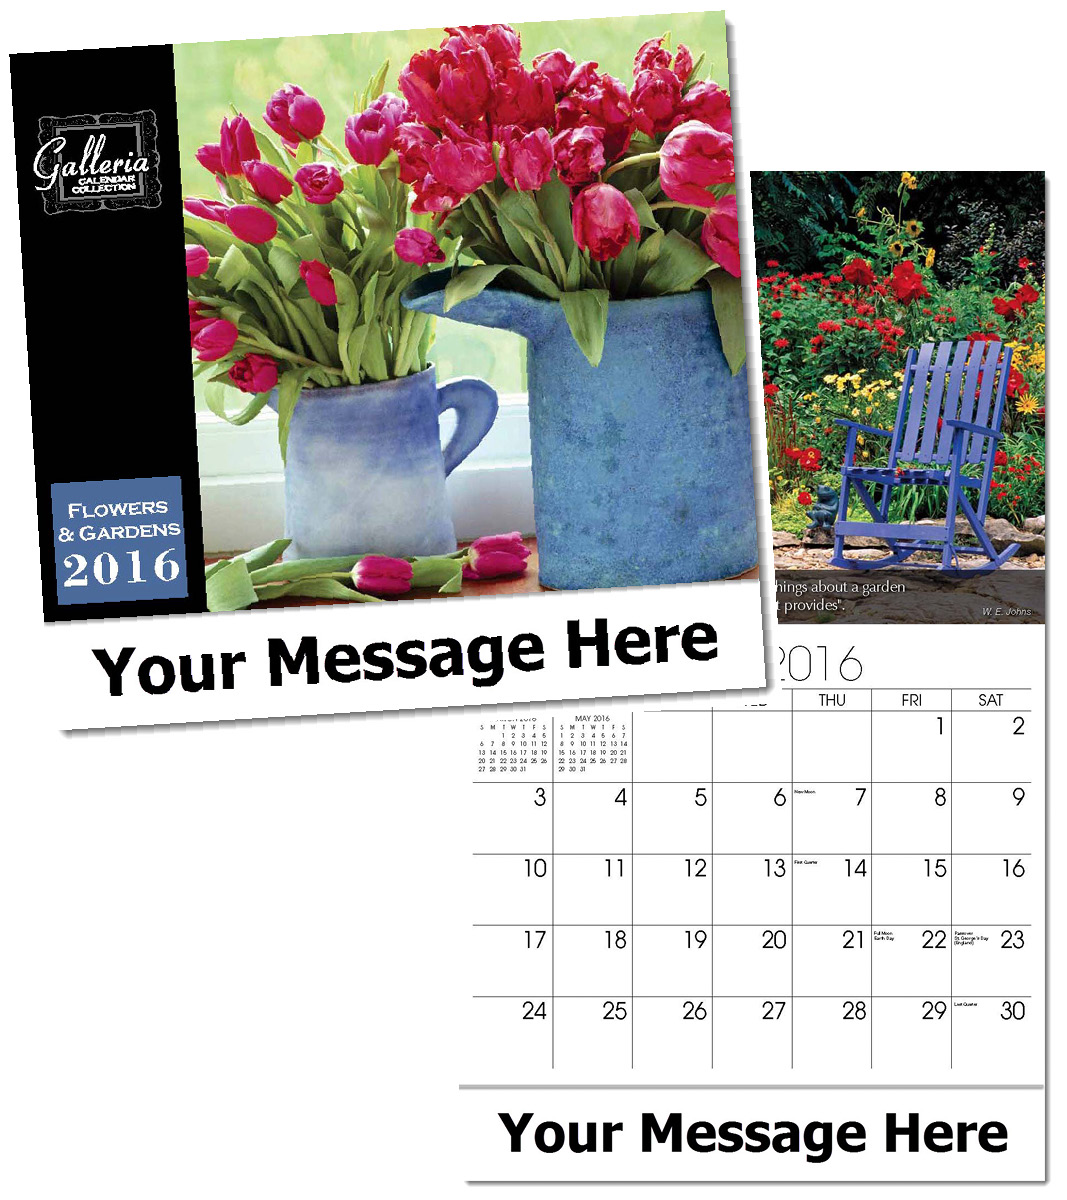 Wholesale Flowers & Gardens Calendars, Personalized with Custom Imprint